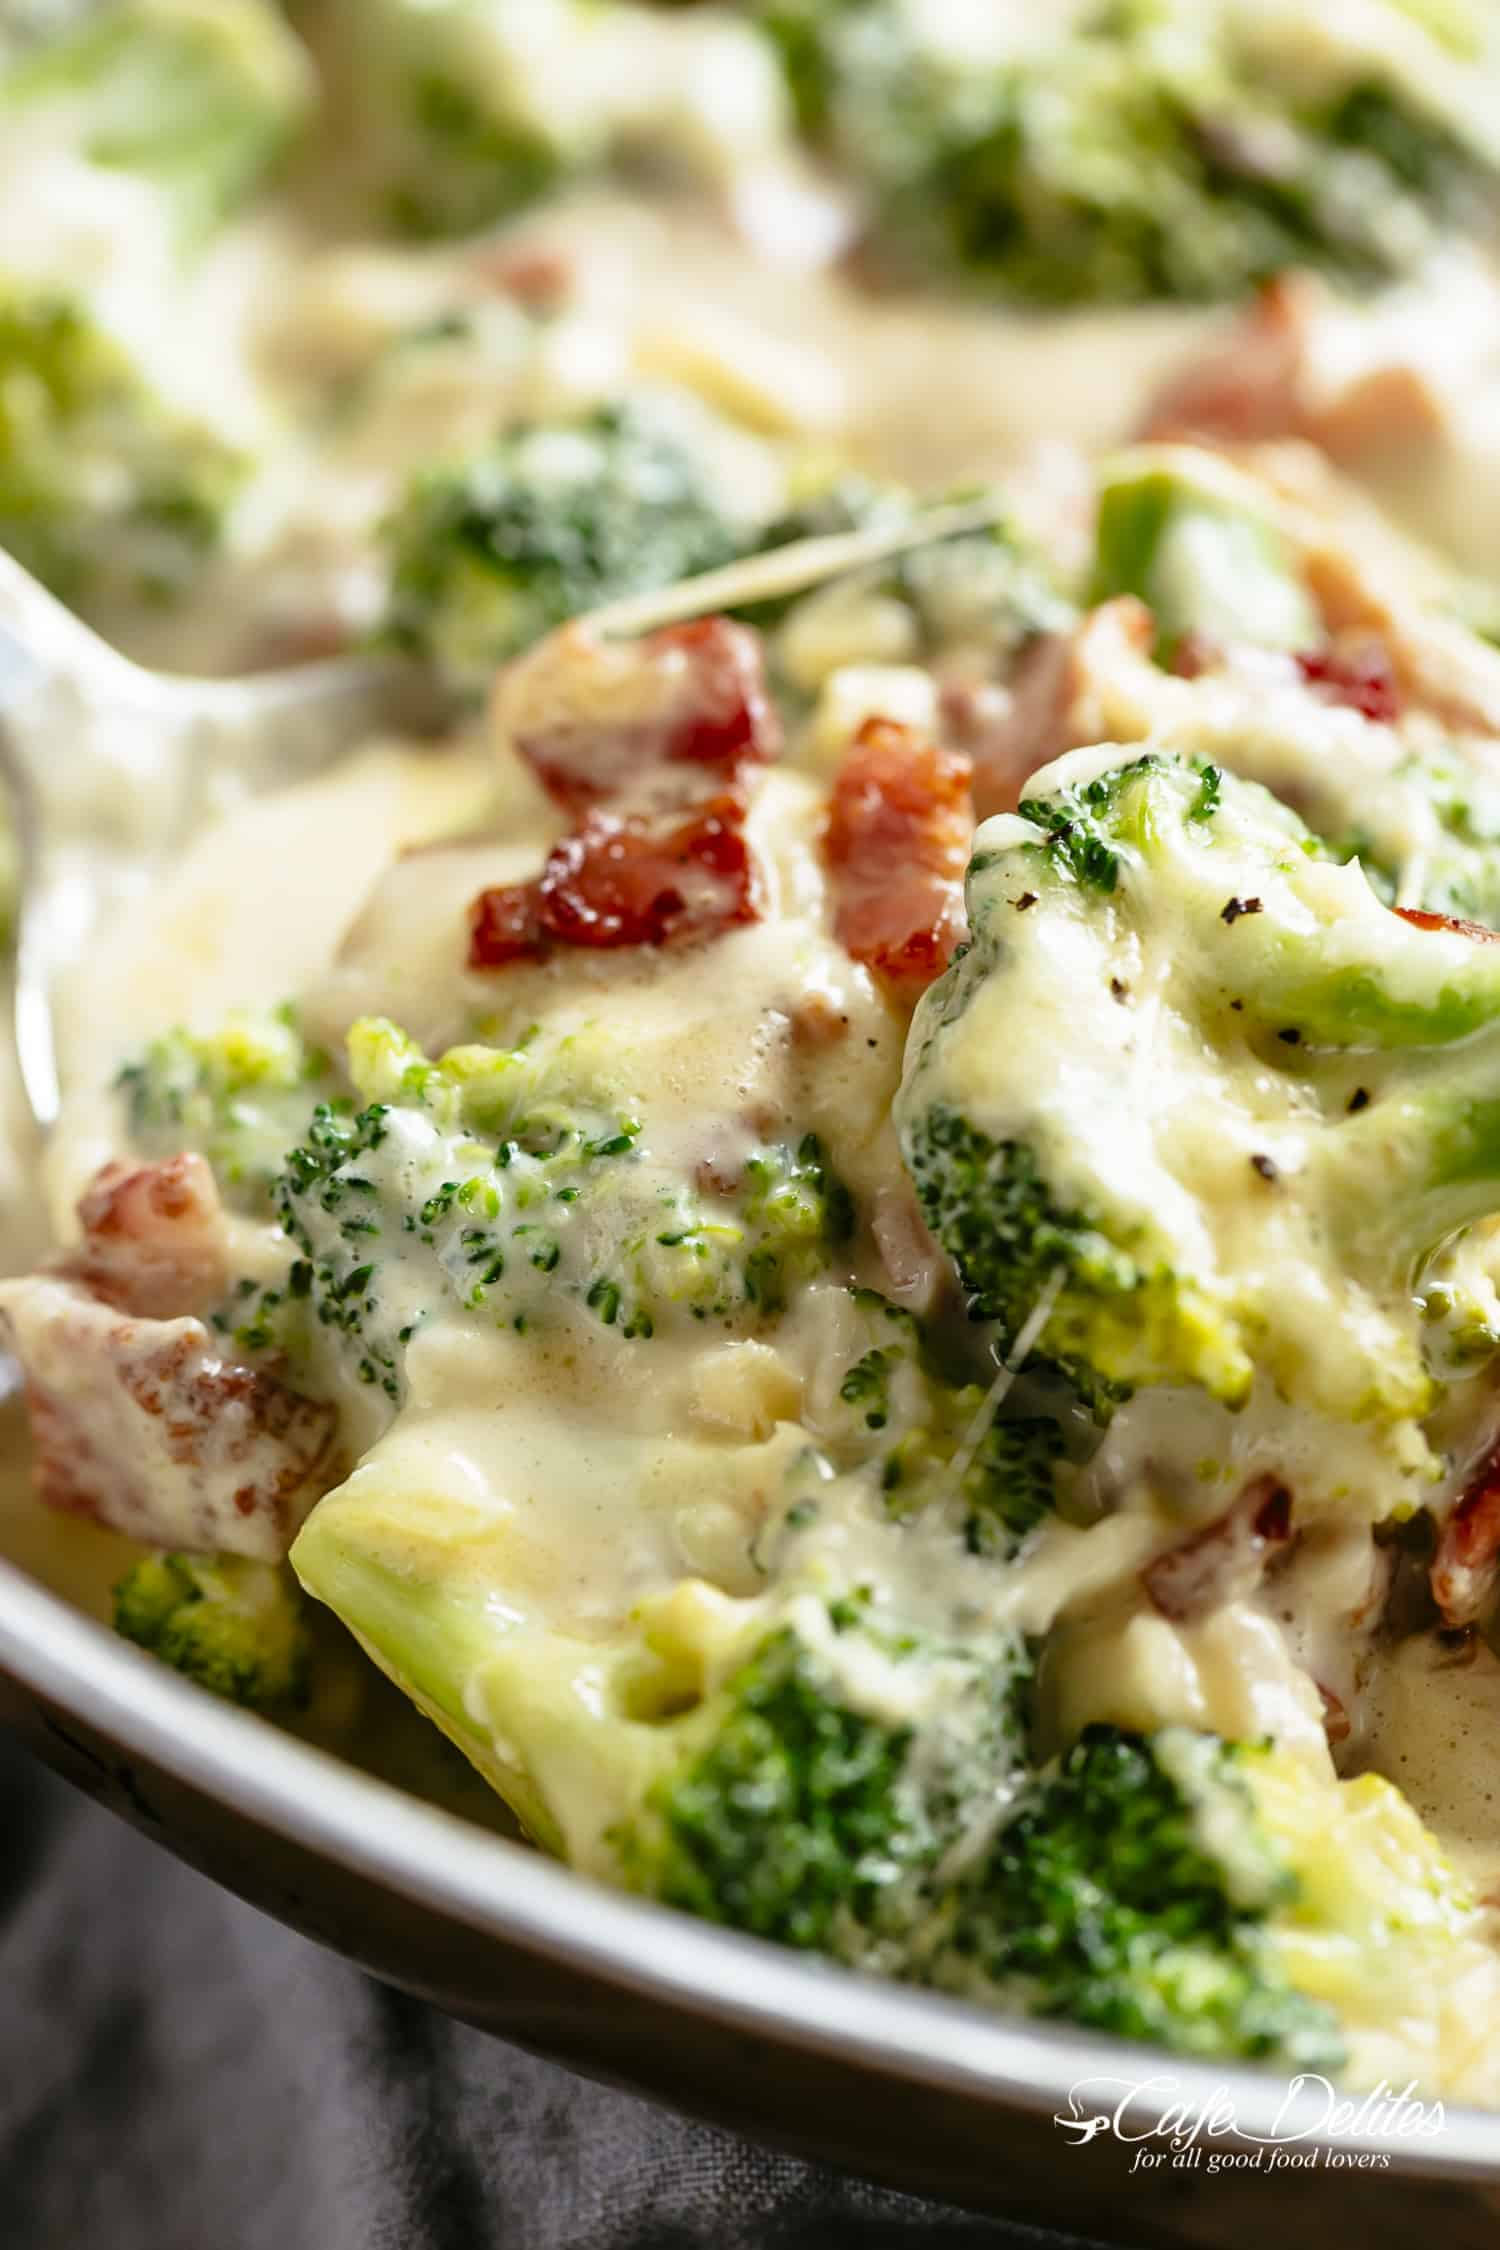 Broccoli Casserole baked in a cheesy creamy parmesan garlic sauce topped with bubbling mozzarella! Keto approved and low carb!   cafedelites.com